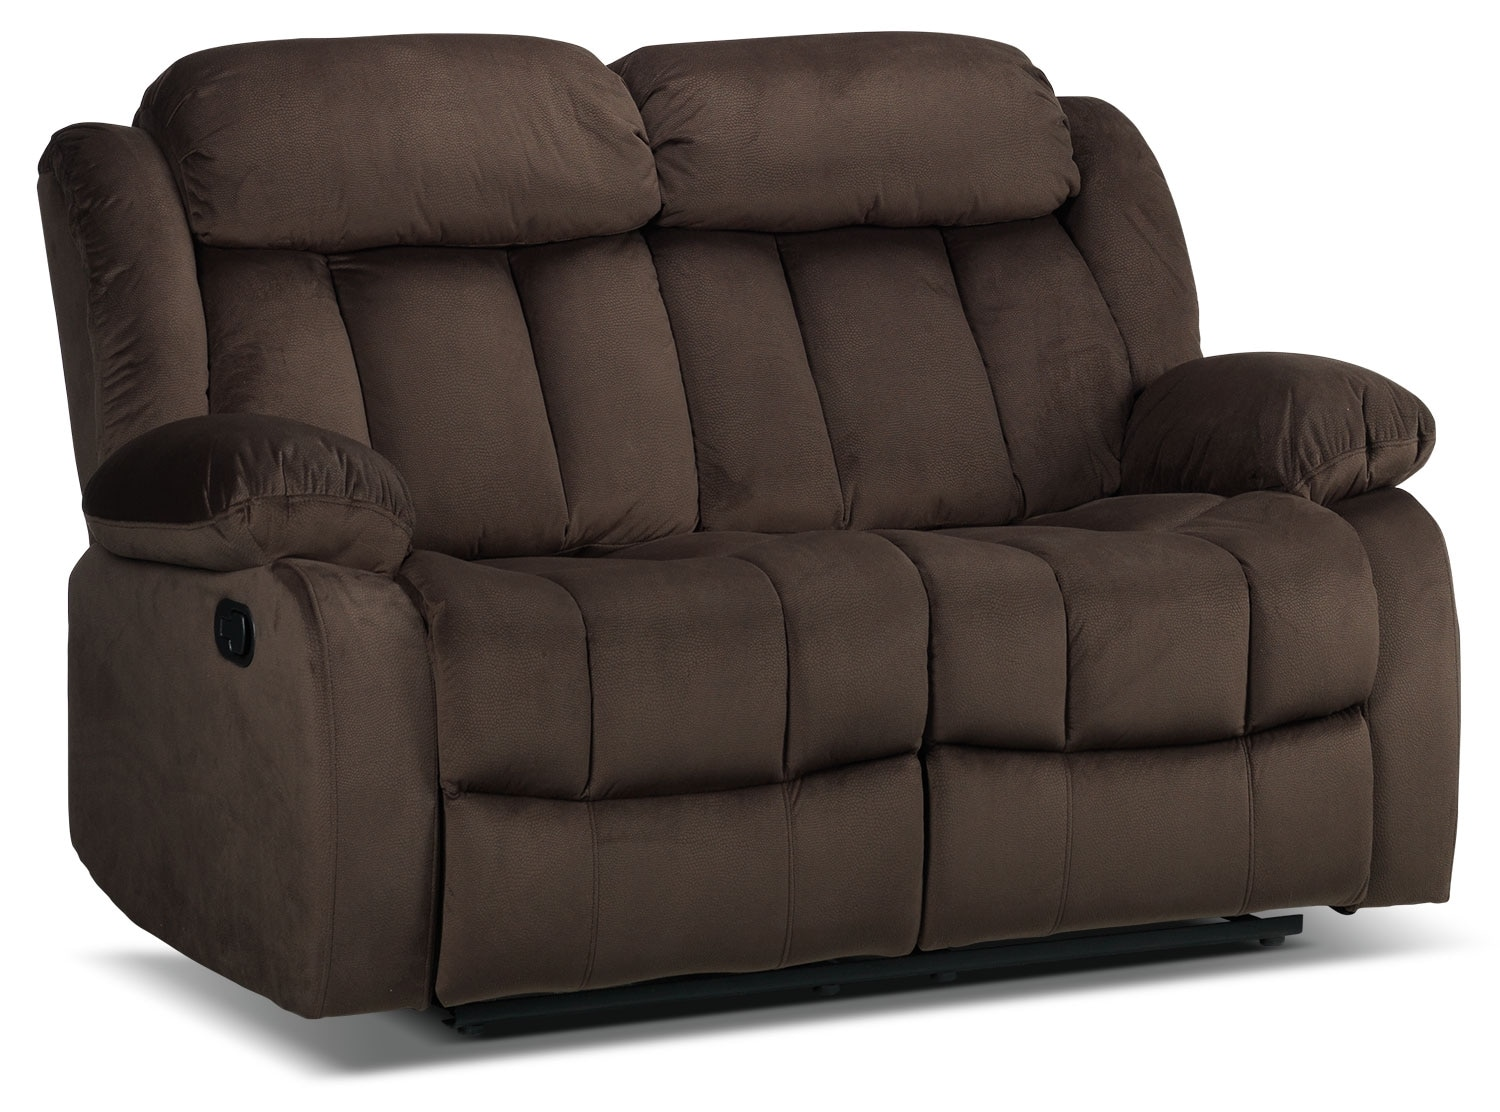 Alabama Reclining Loveseat Deep Brown Leon 39 S